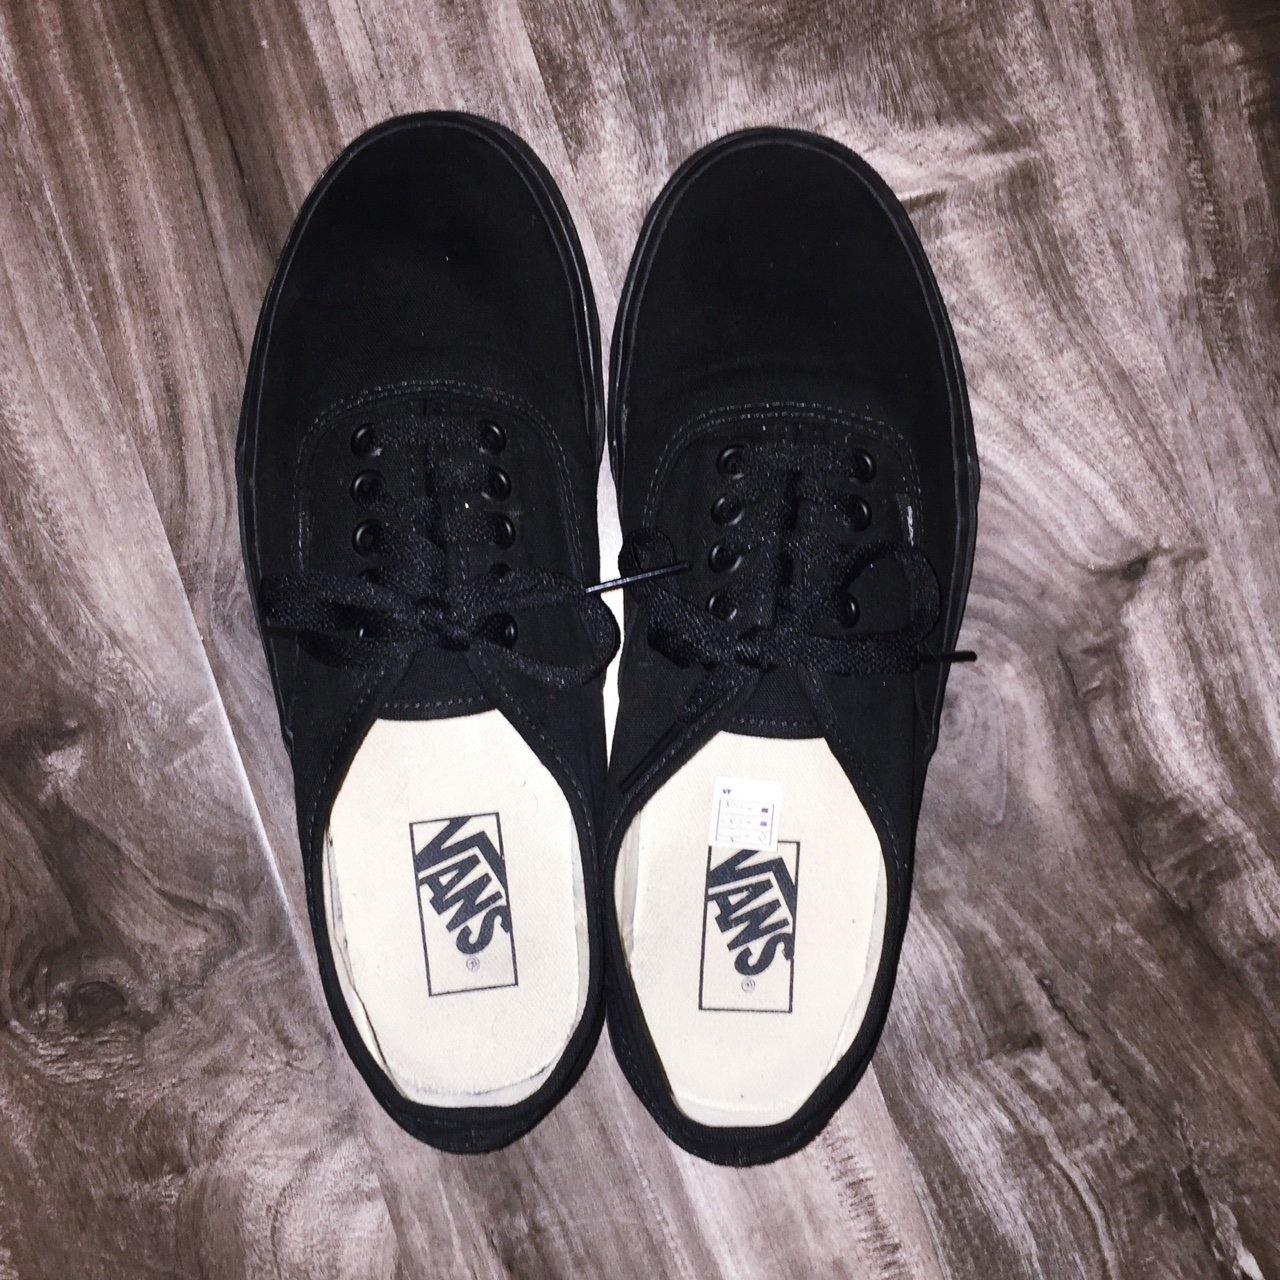 51f8fd6a8ba All black canvas Vans shoes! Worn maybe 3 times total. Size - Depop